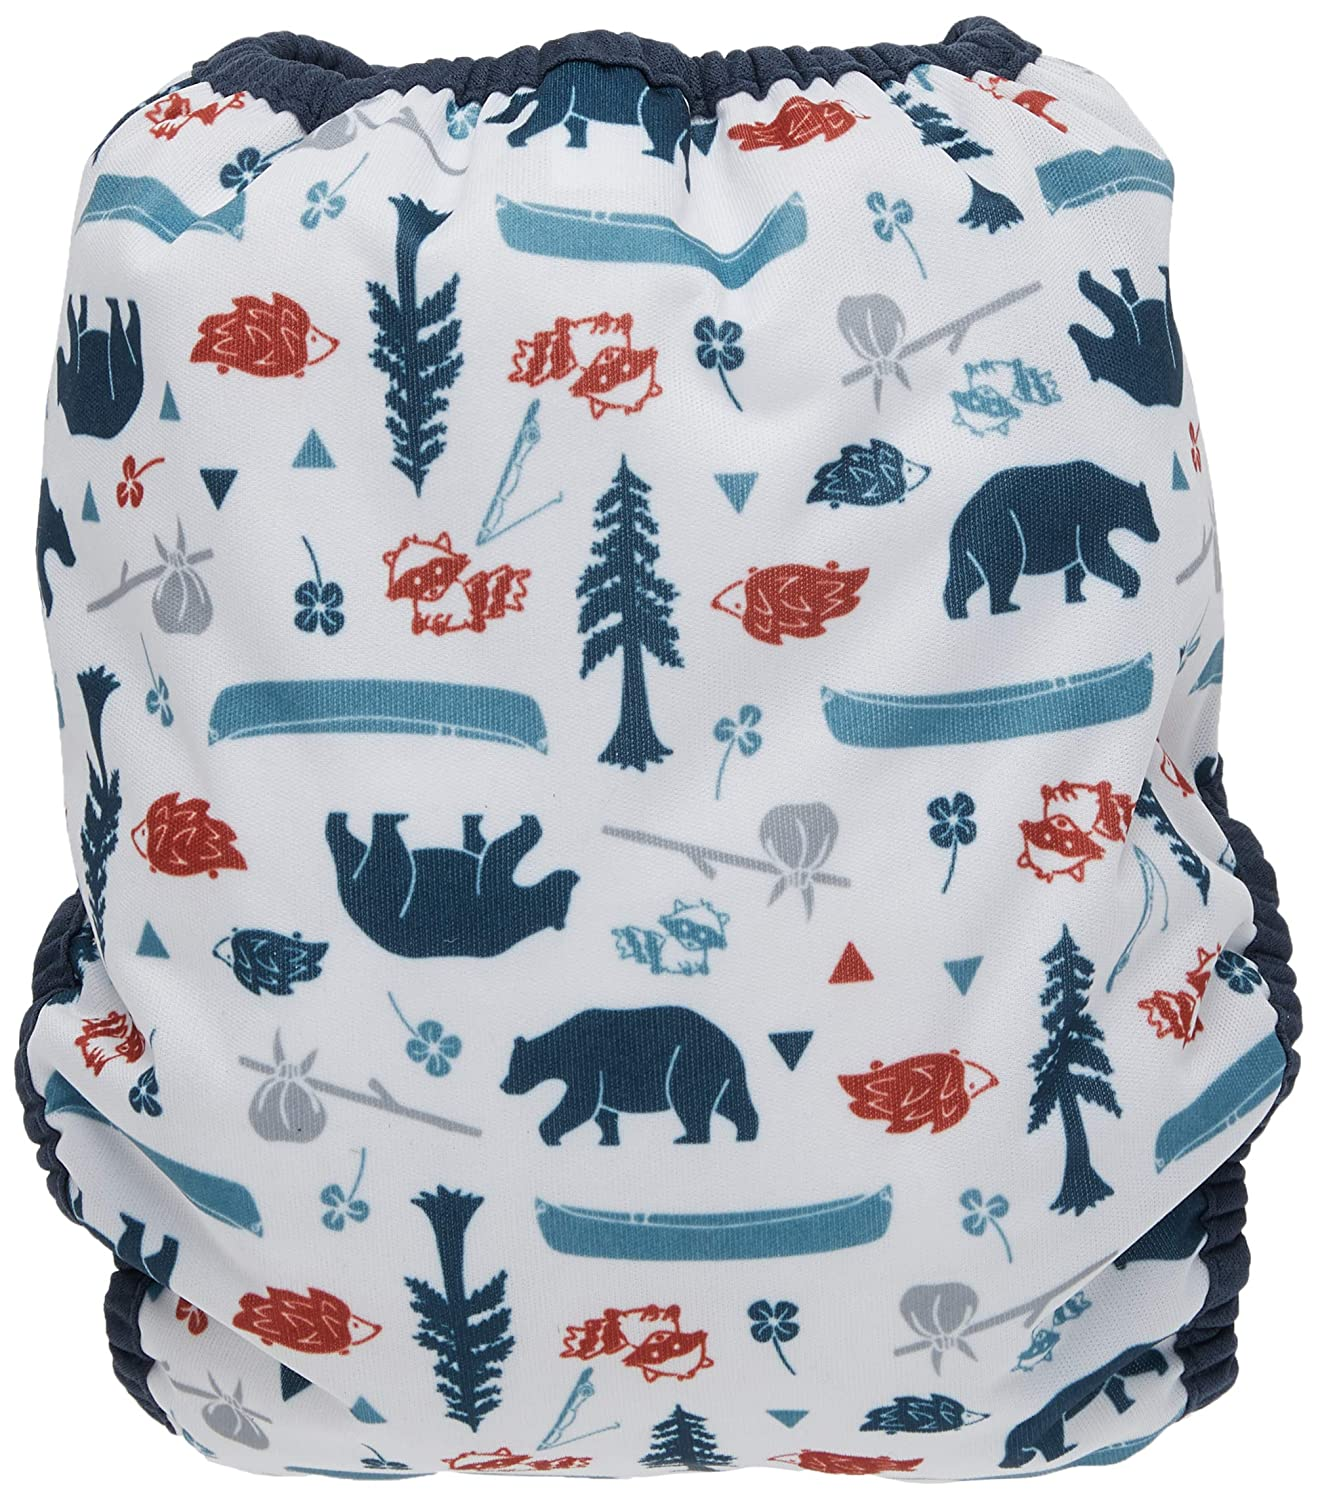 Fin Size 1 6-18 lbs Thirsties Duo Wrap Diaper Cover with Snaps